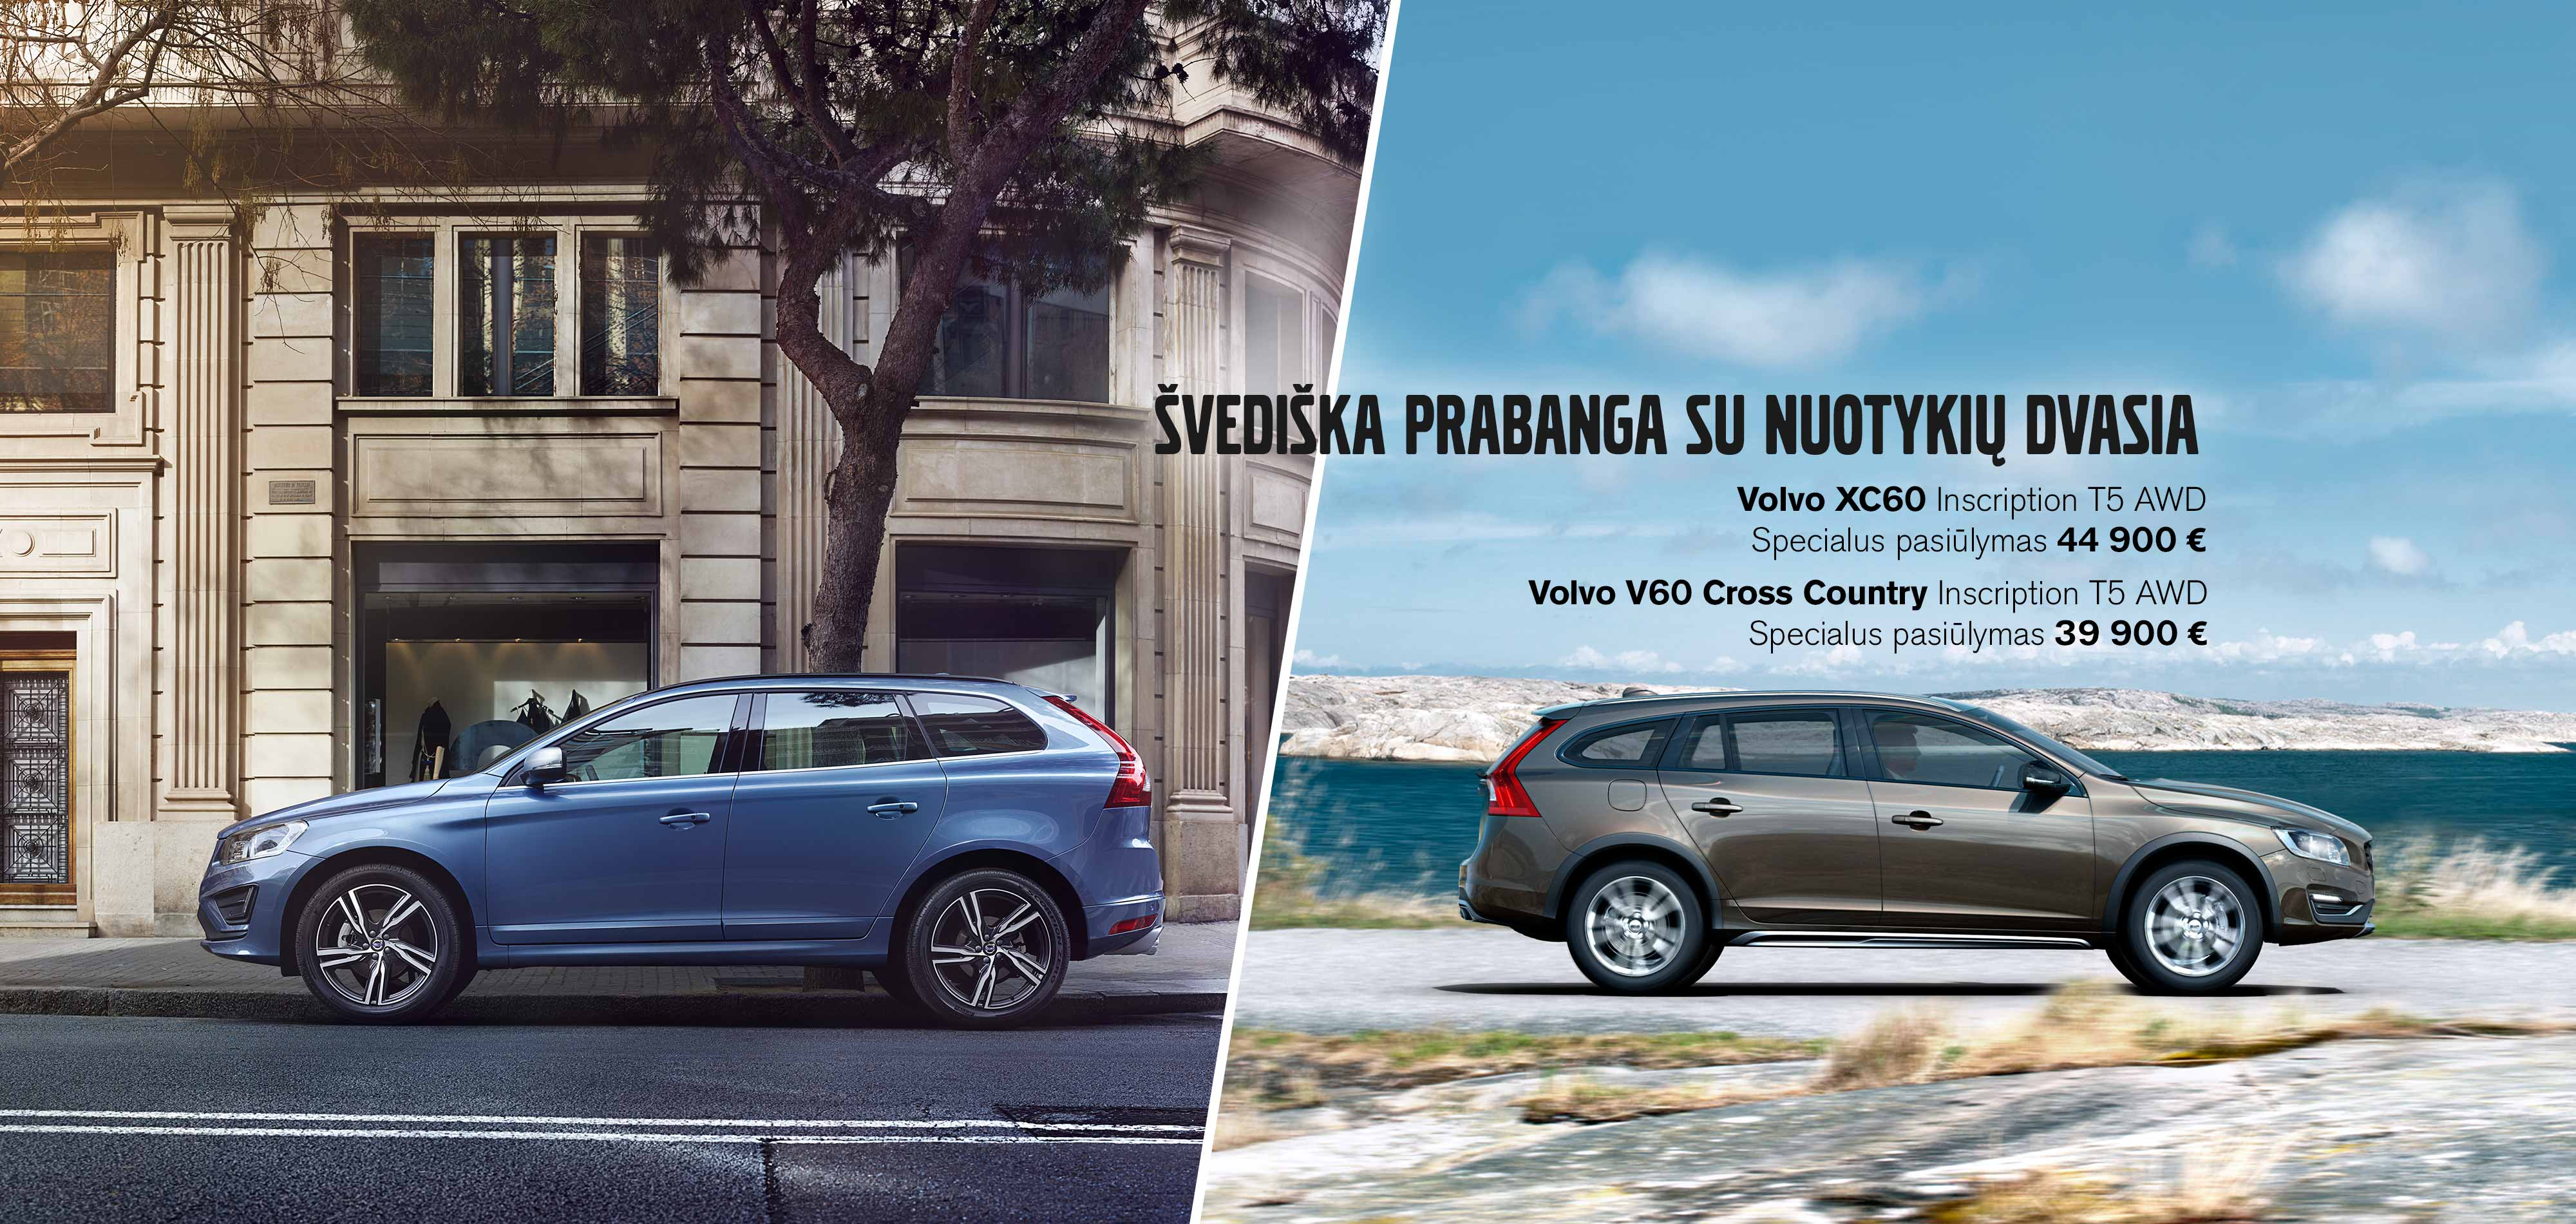 Volvo XC60 ir V60 Cross Country